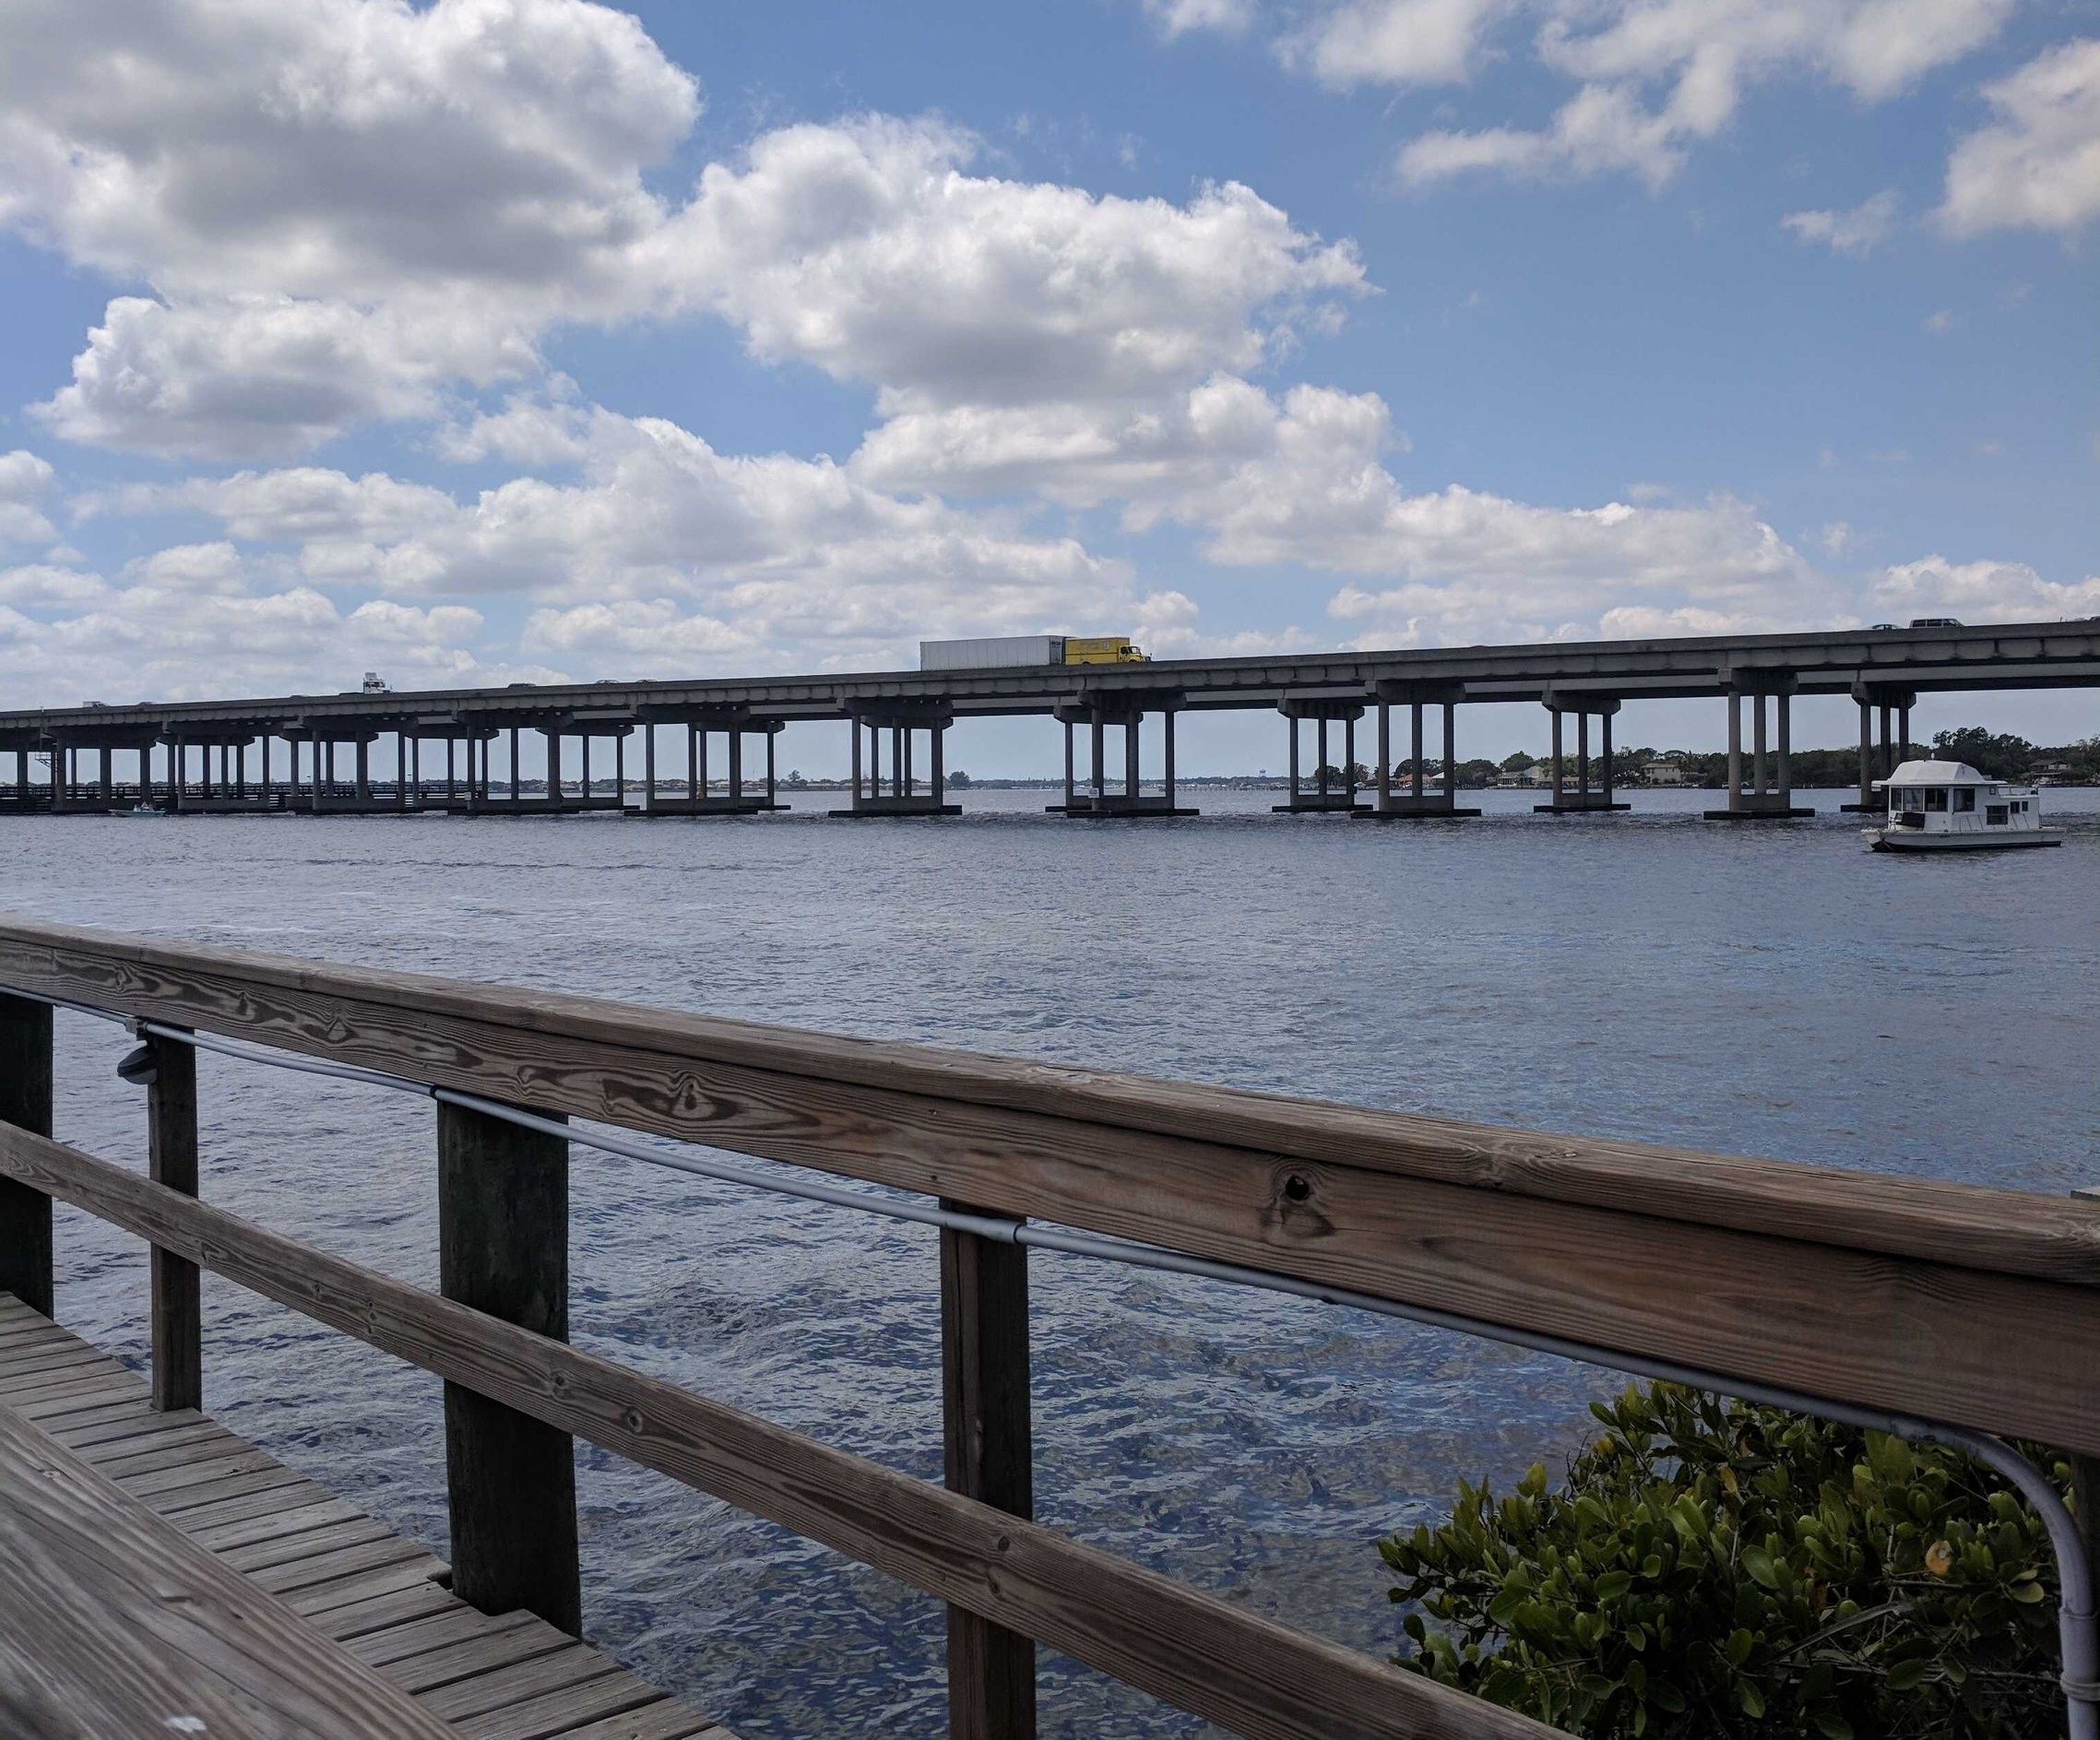 View of Manatee River and Bridge at Woody's River Roo